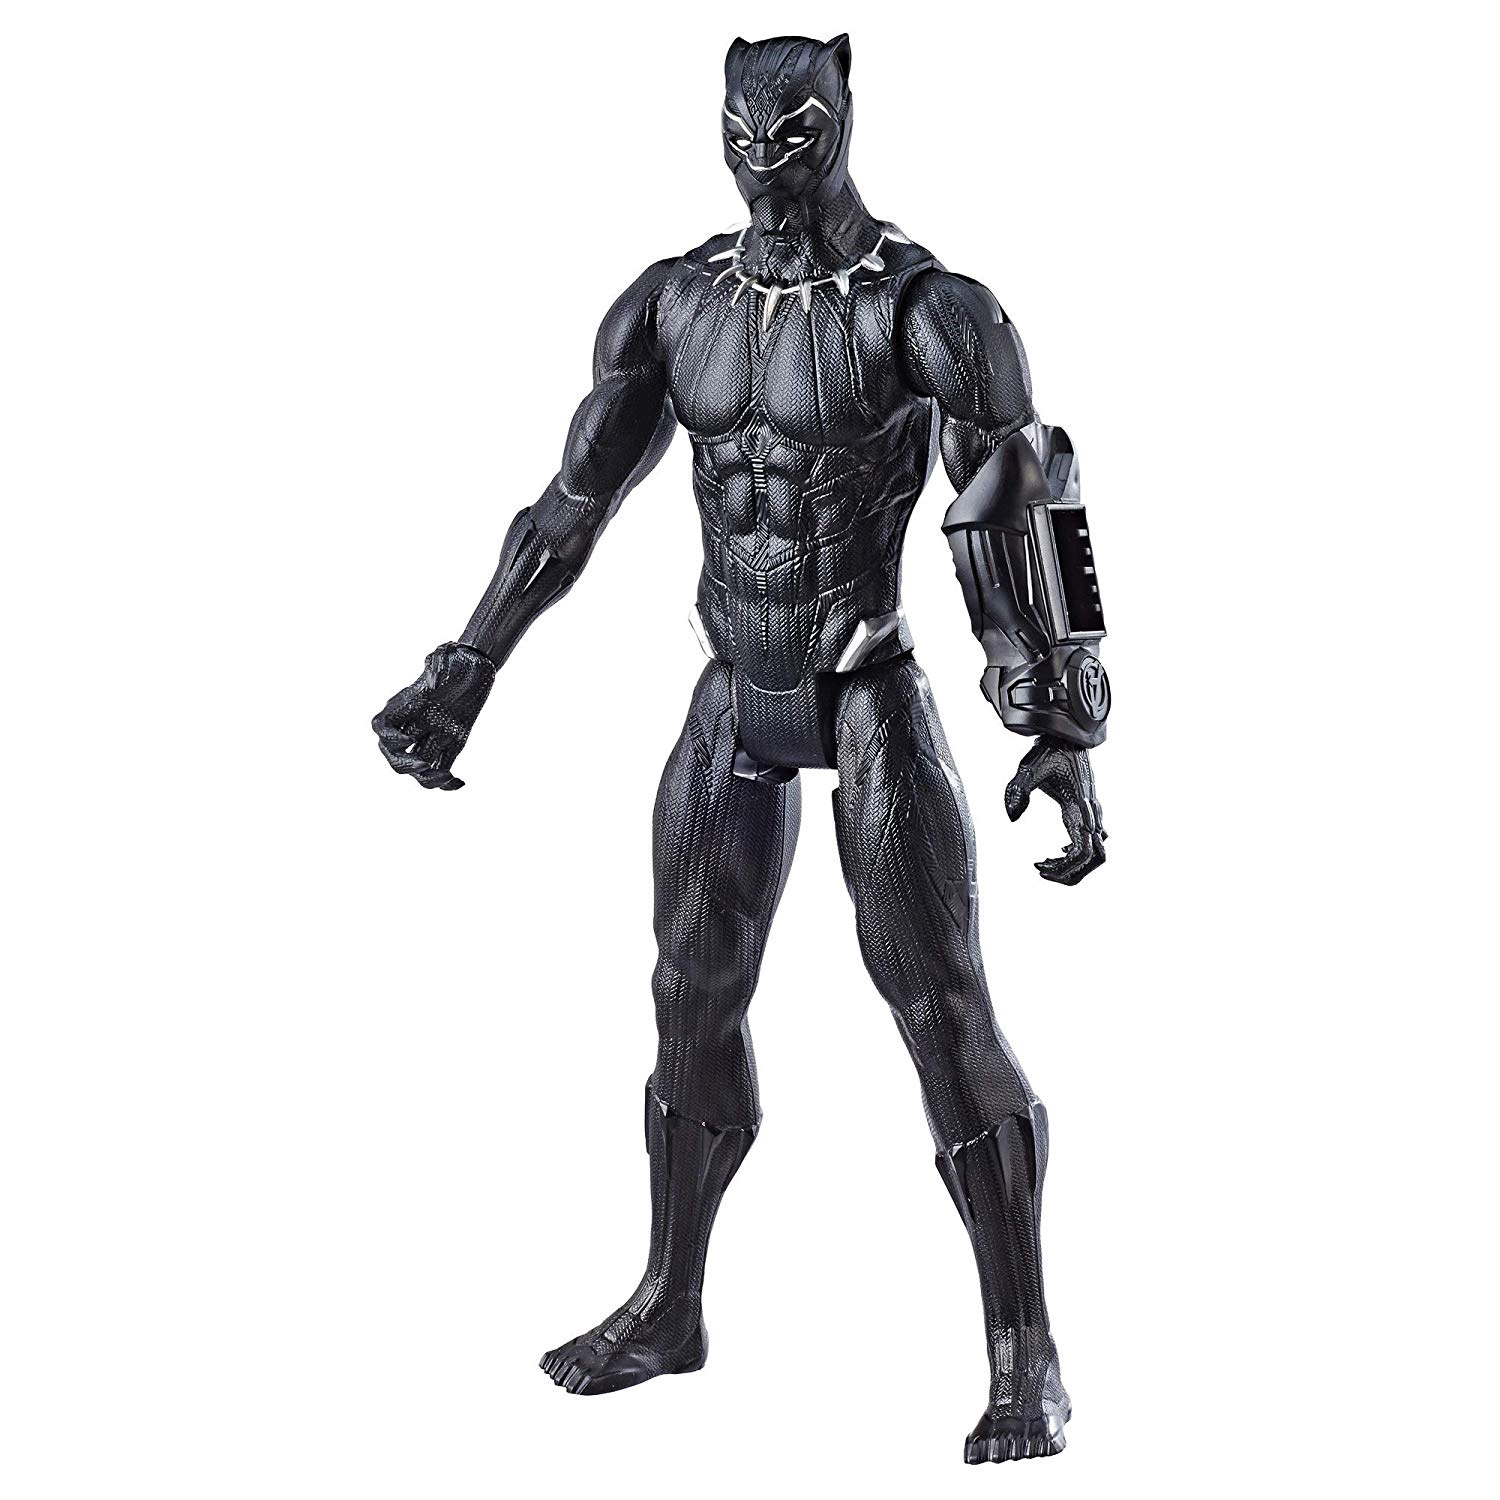 AVENGERS TITAN HERO SERIES BLACK PANTHER